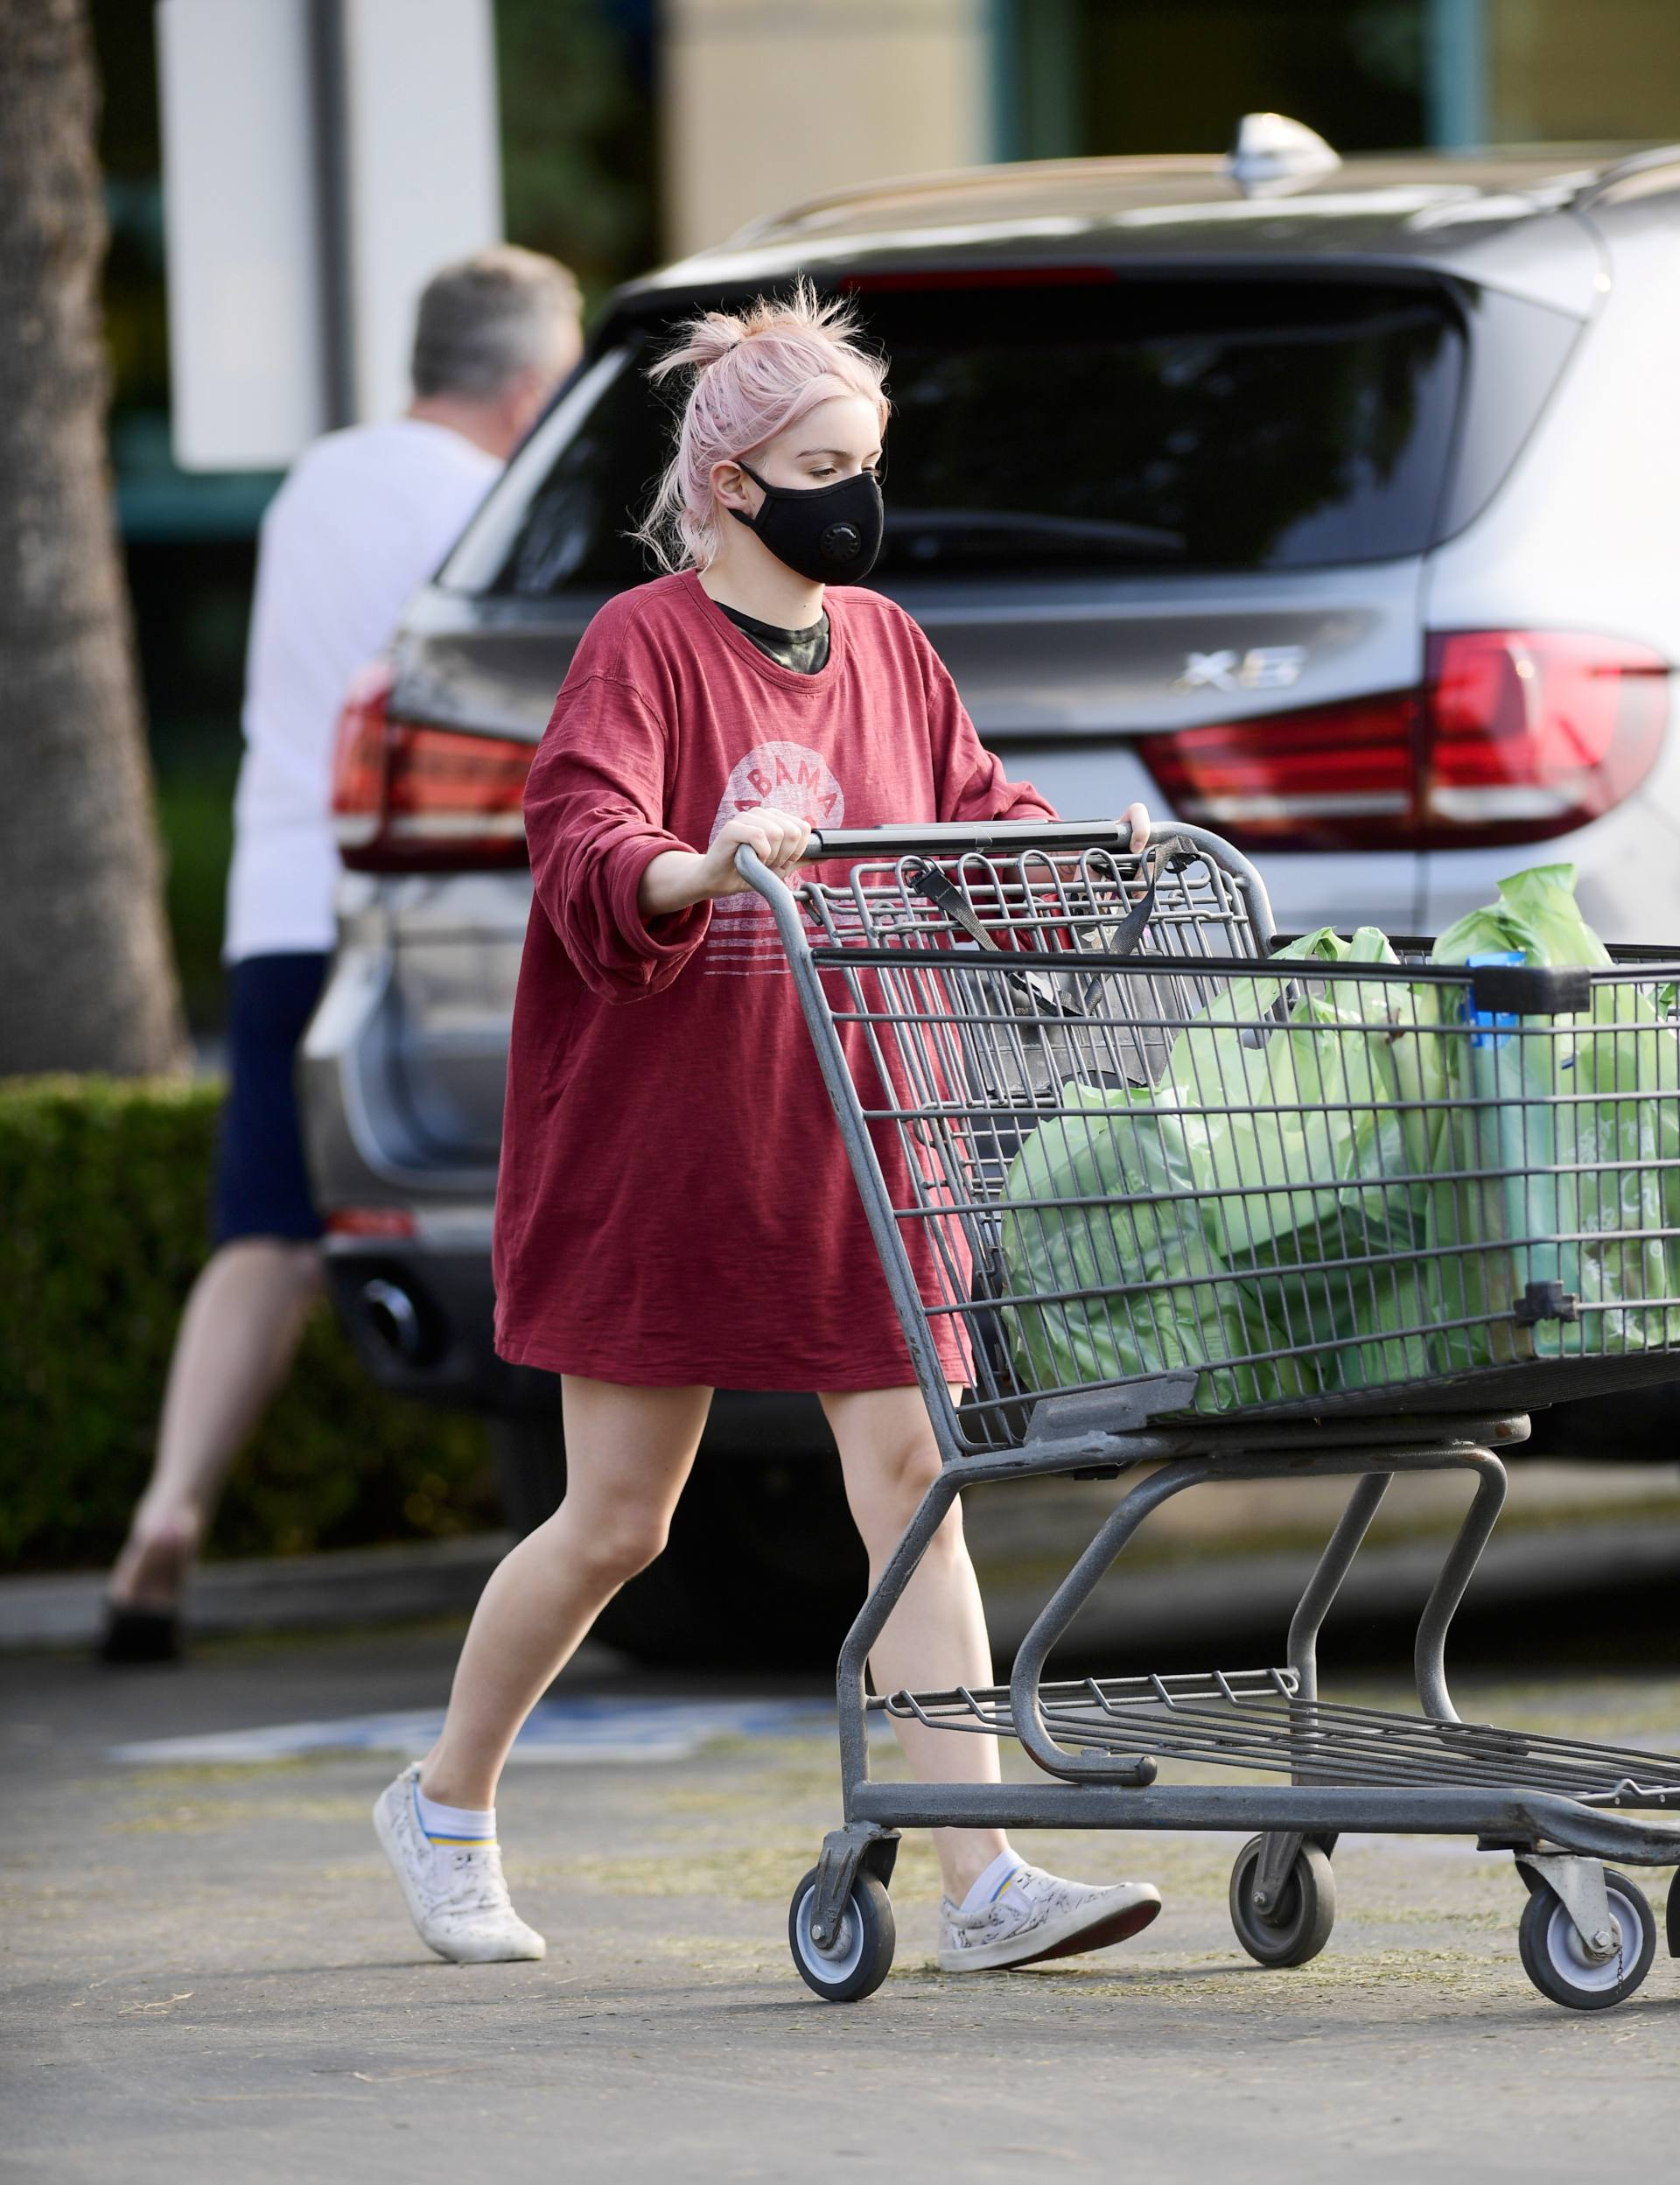 Ariel Winter - Hot Upskirt in Red Shirt Out in Los Angeles